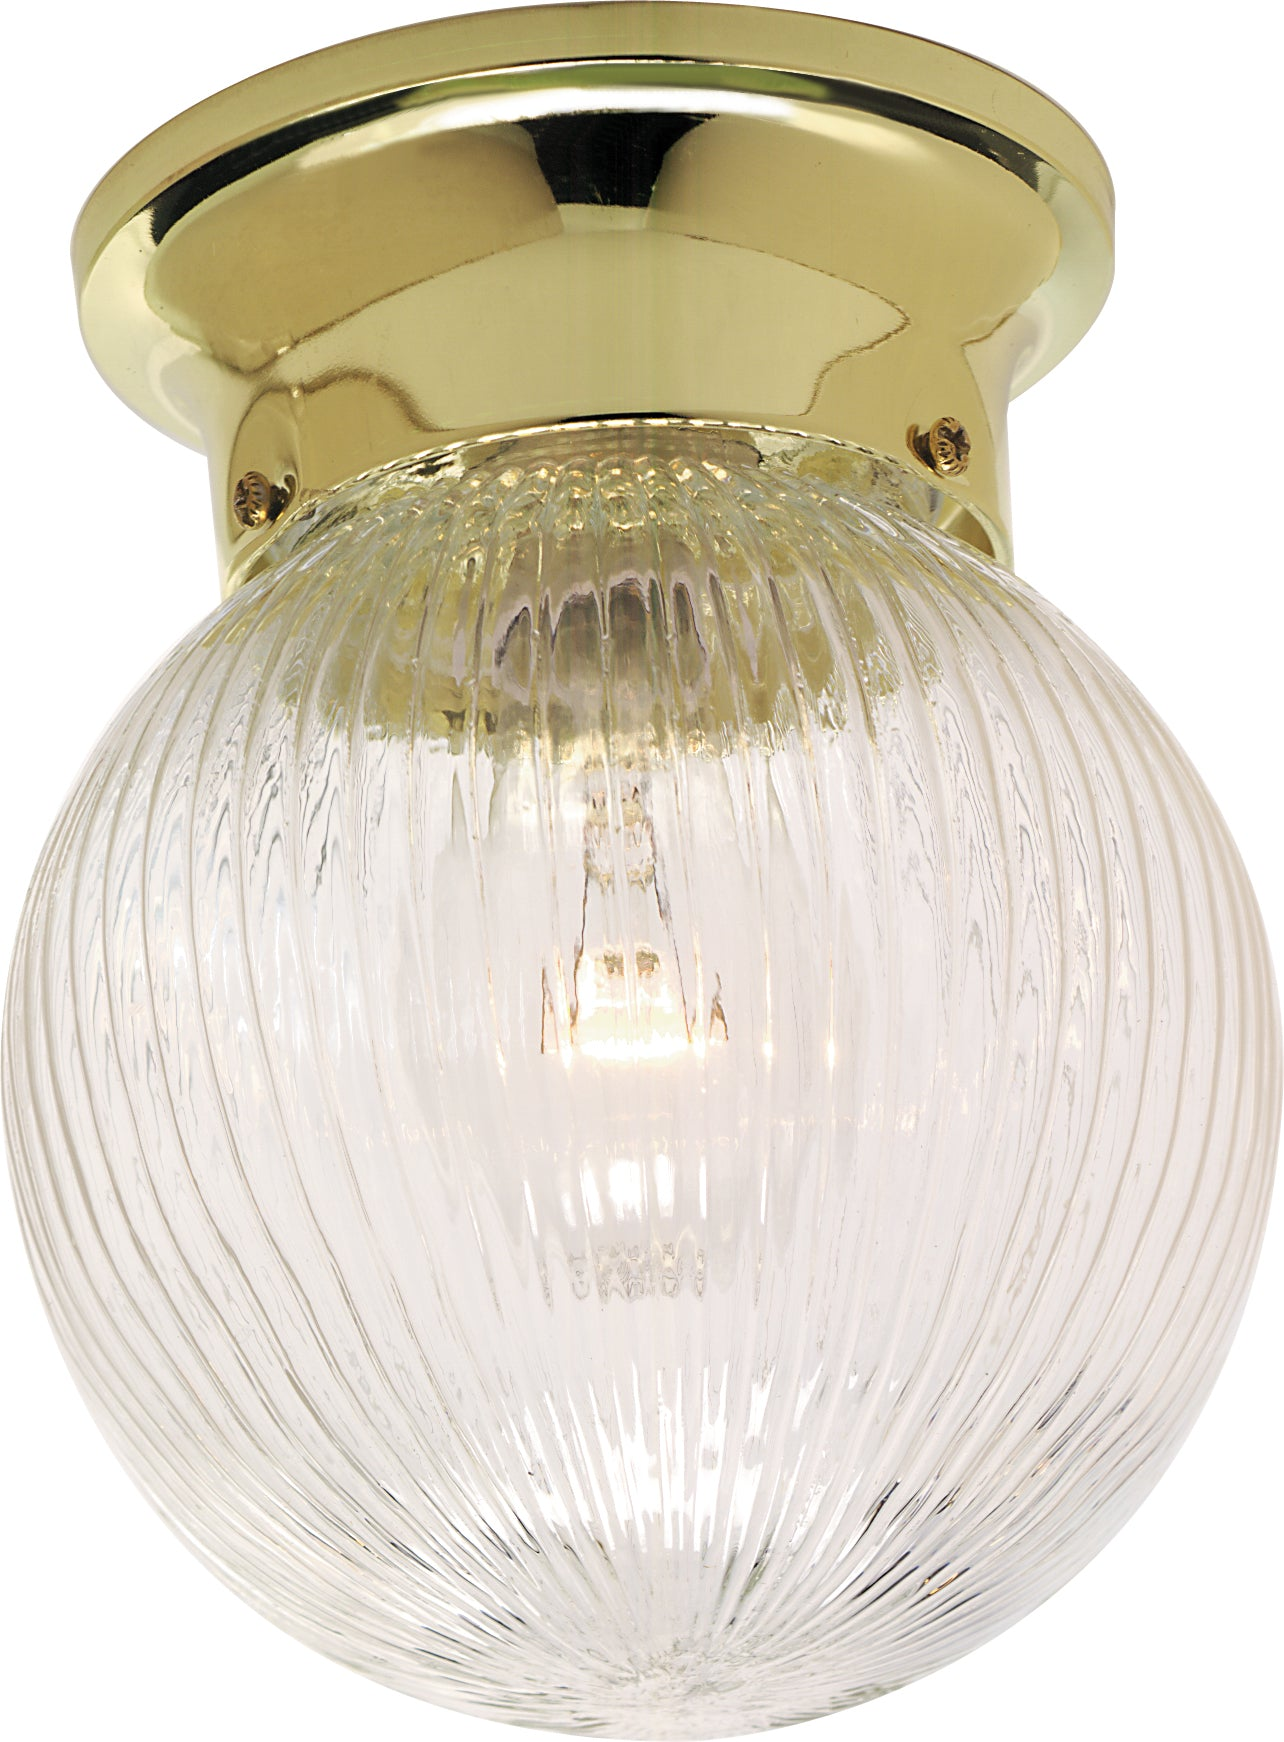 "1-Light 6"" Flush Mounted Close-to-Ceiling Light Fixture in Polished Brass Finish"